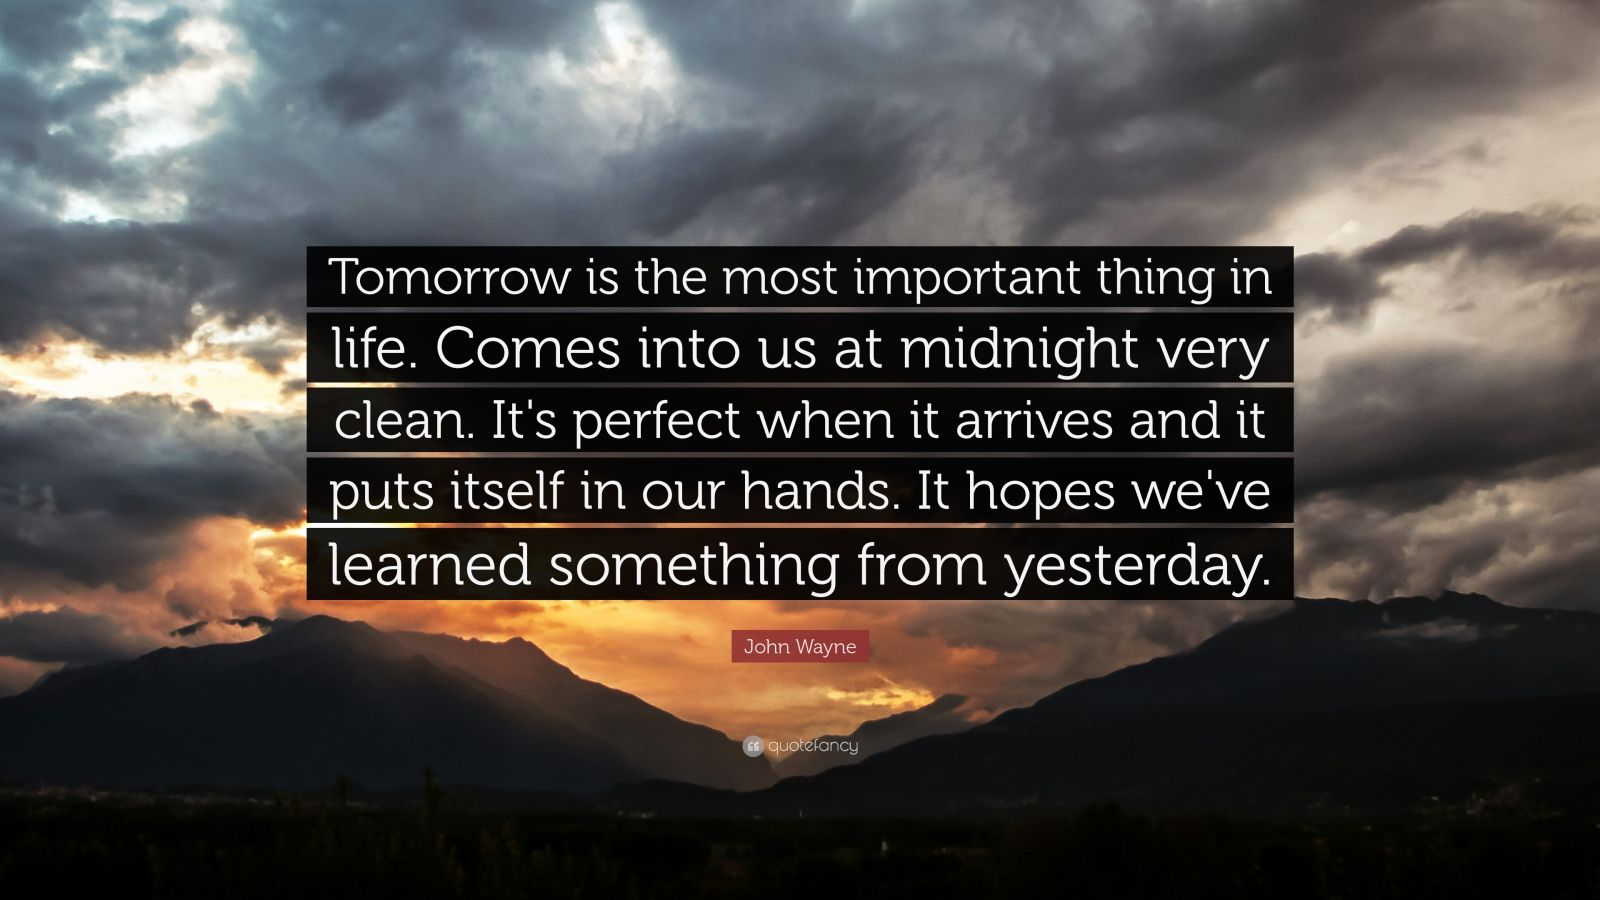 """John Wayne Quote: """"Tomorrow is the most important thing in life. Comes into us at midnight very clean. It's perfect when it arrives and it puts itself in our hands. It hopes we've learned something from yesterday."""""""